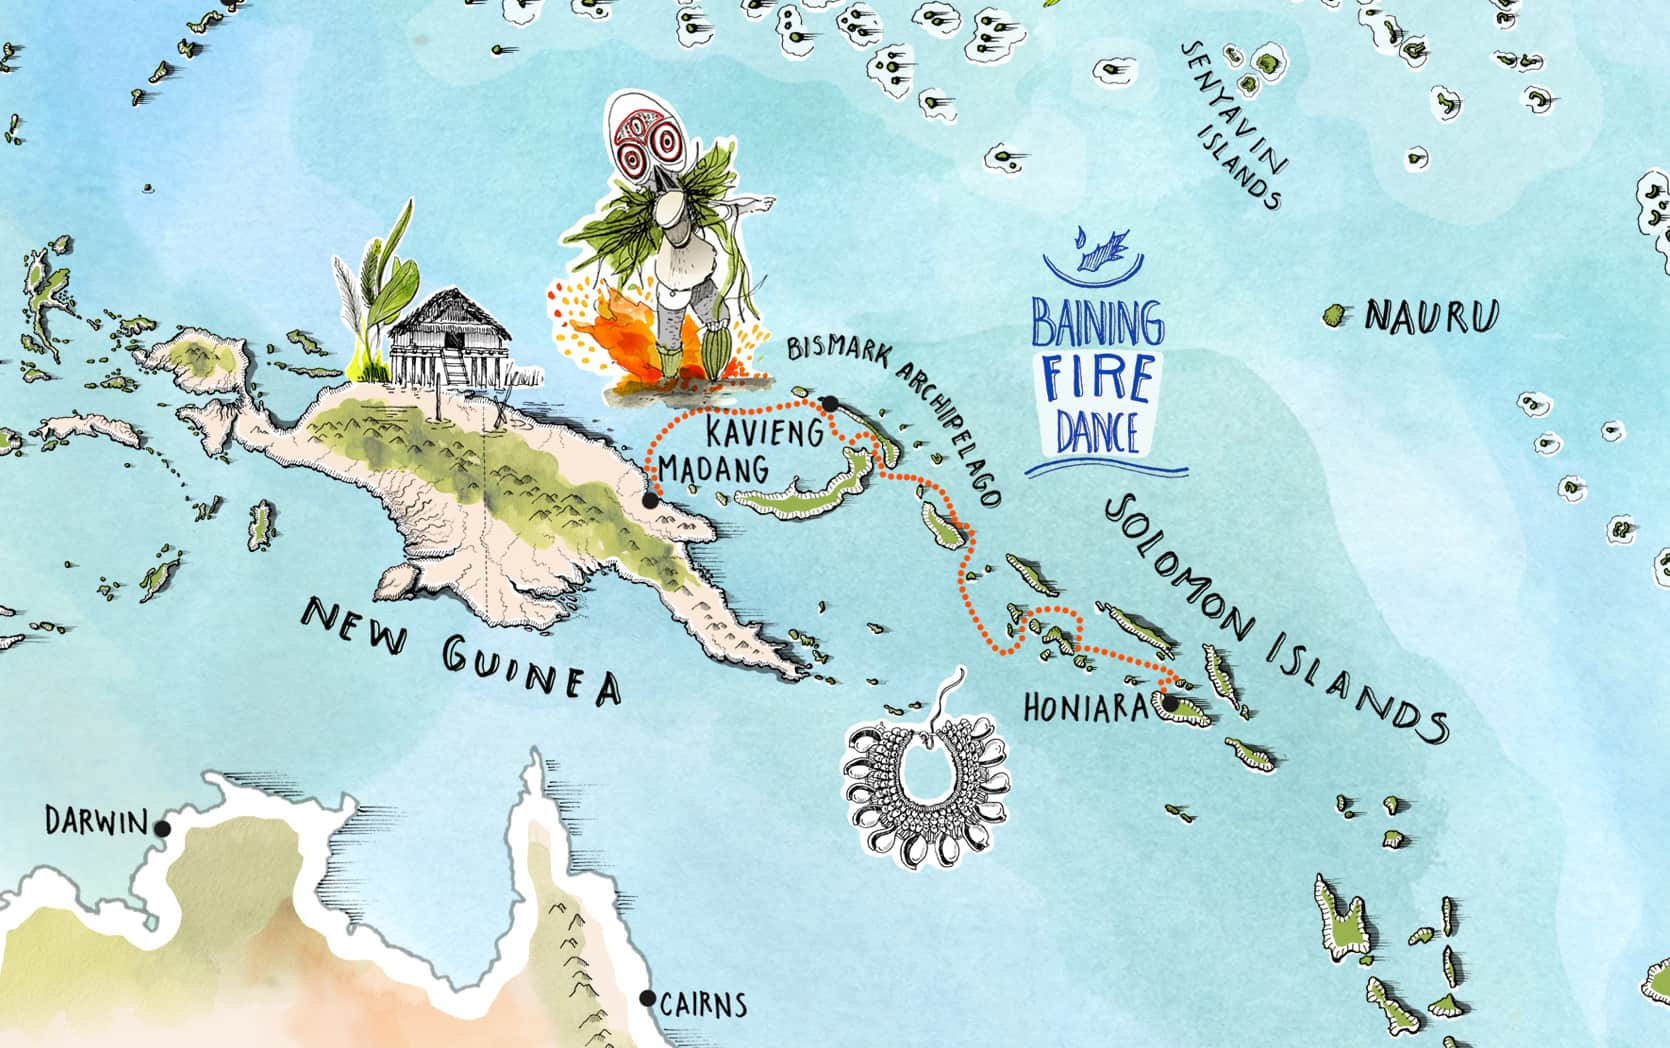 Small Islands of The World - Madang to Honiara Map